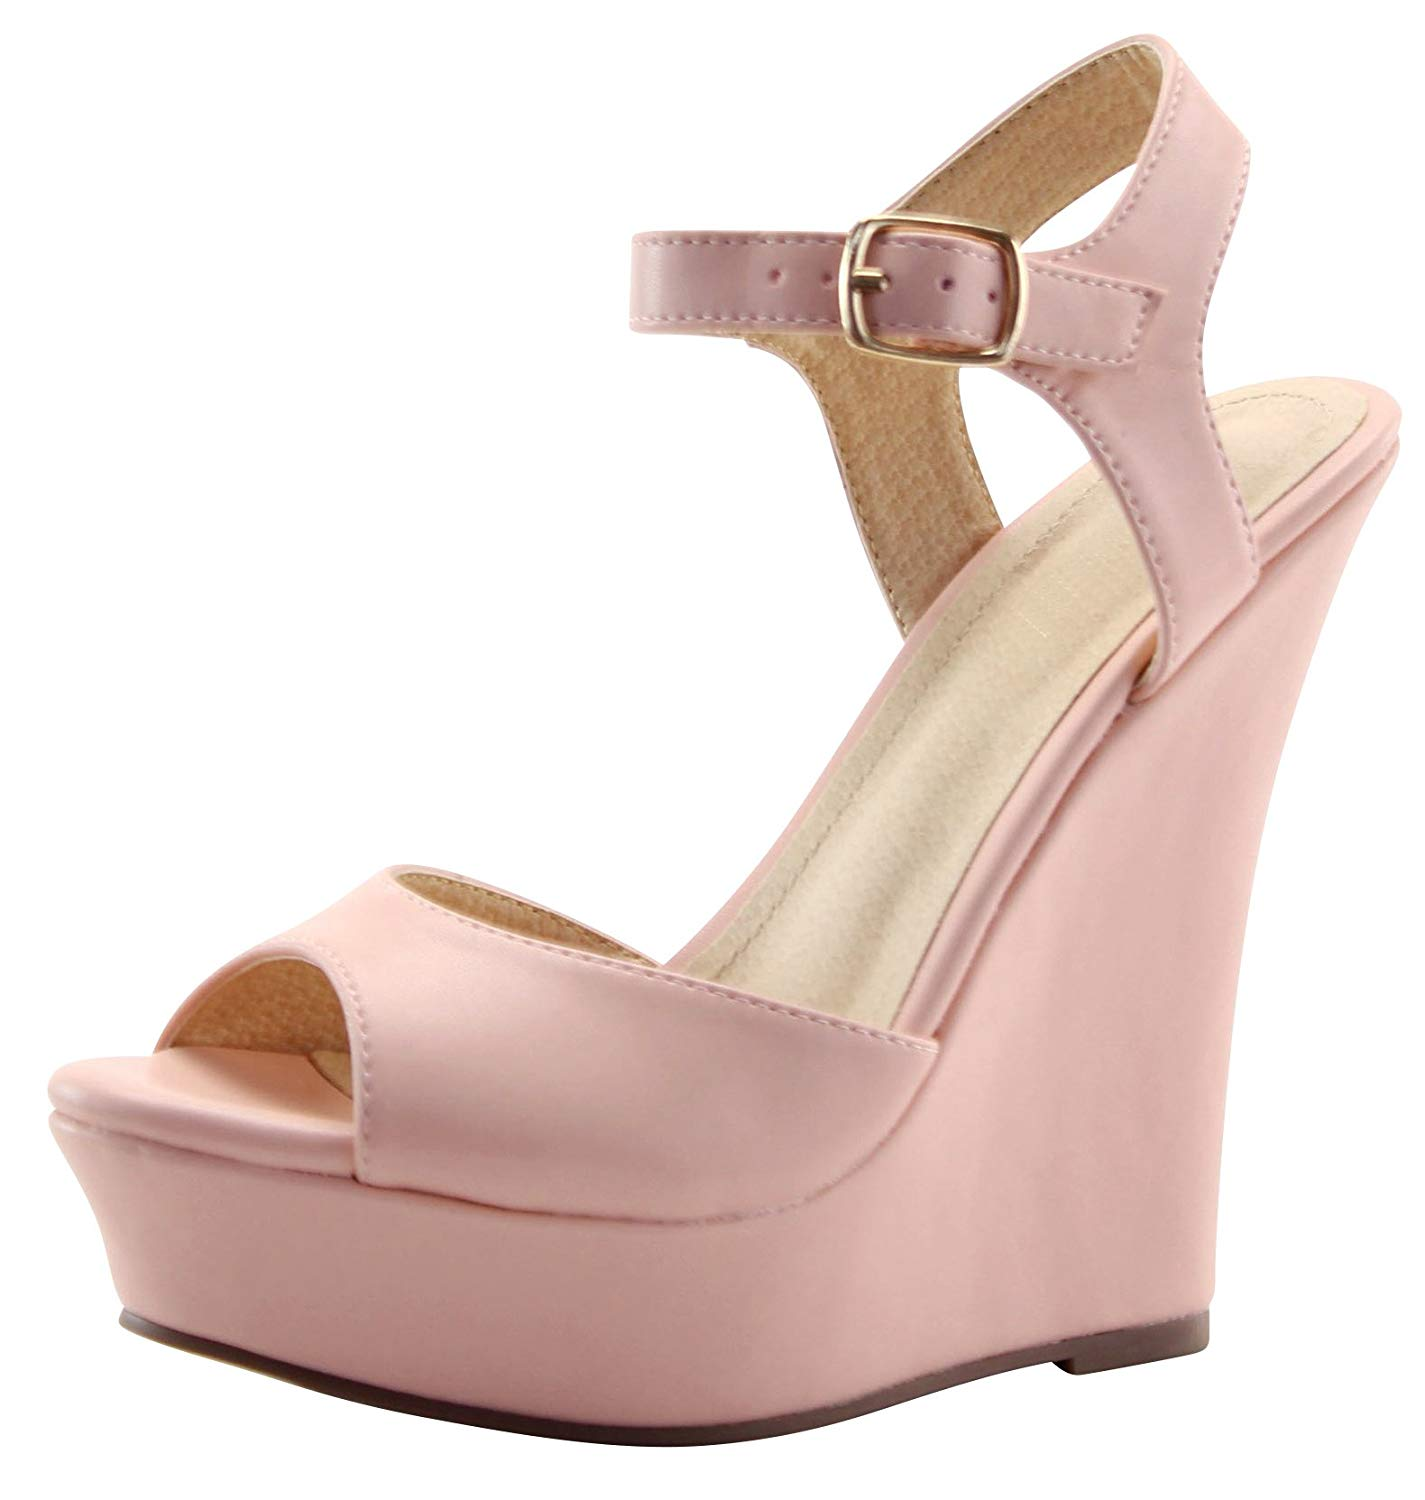 12531b2774a7 Get Quotations · Cambridge Select Women s Peep Toe Buckle Ankle Strappy High  Platform Wedge Sandal